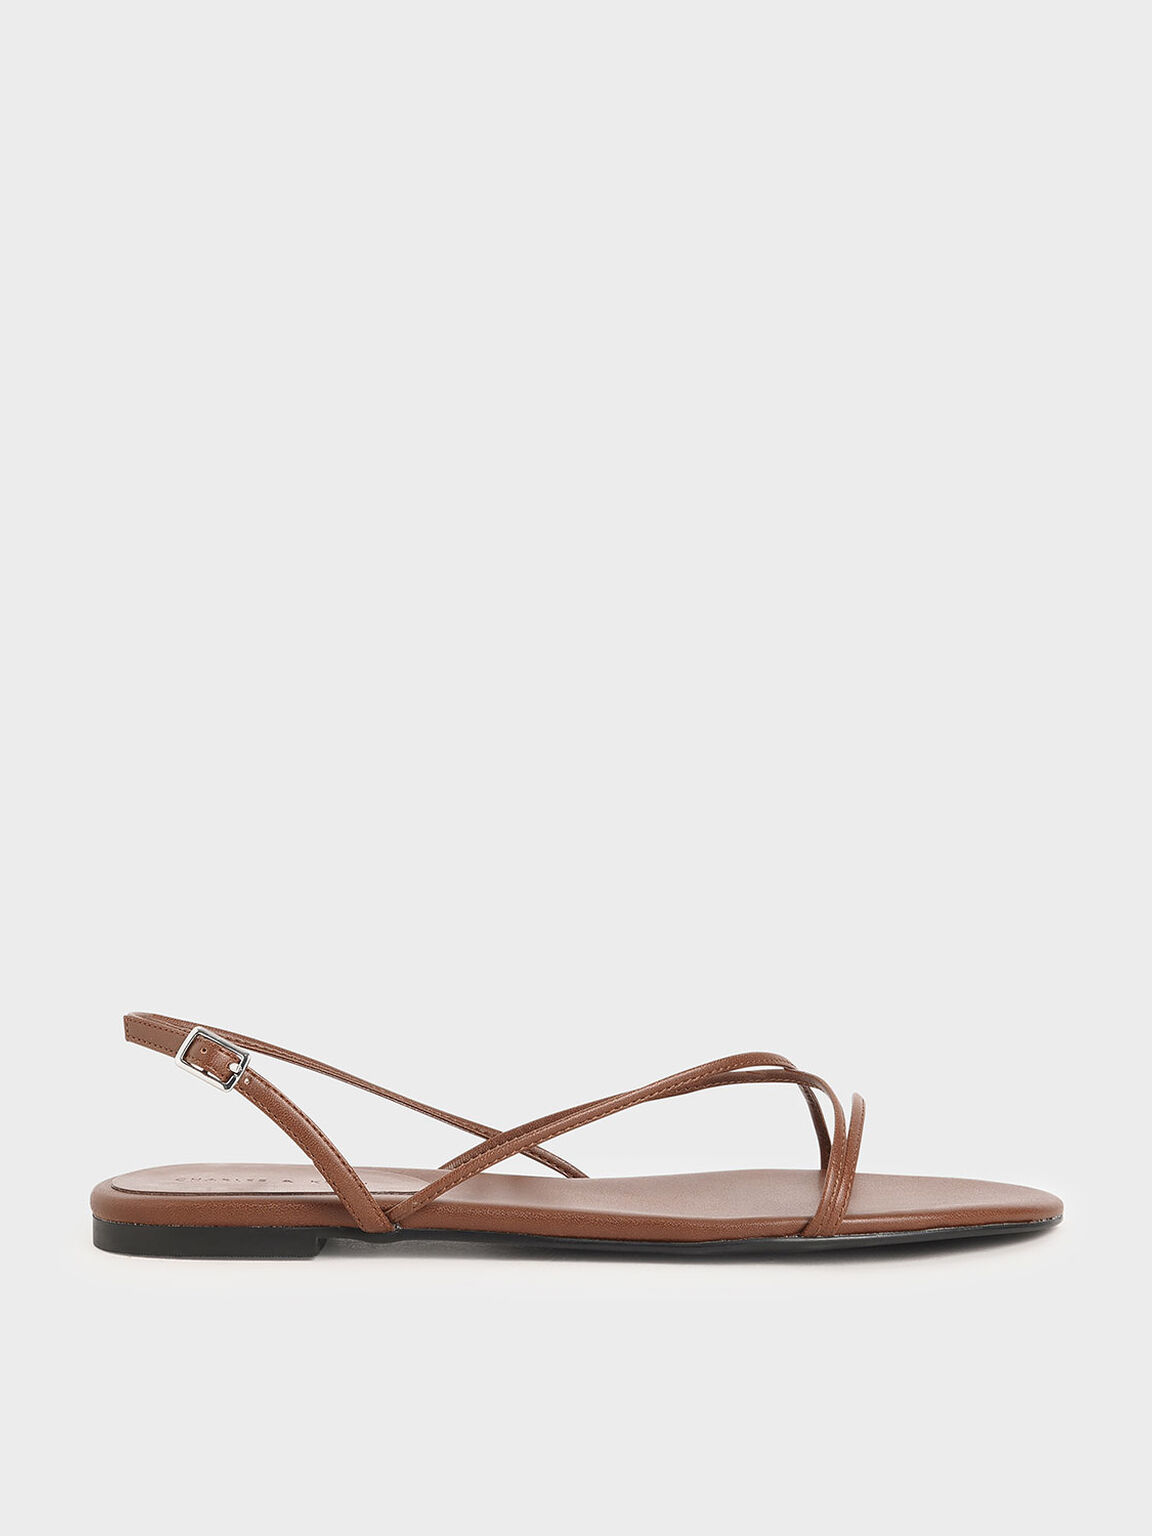 Strappy Flat Sandals, Brown, hi-res